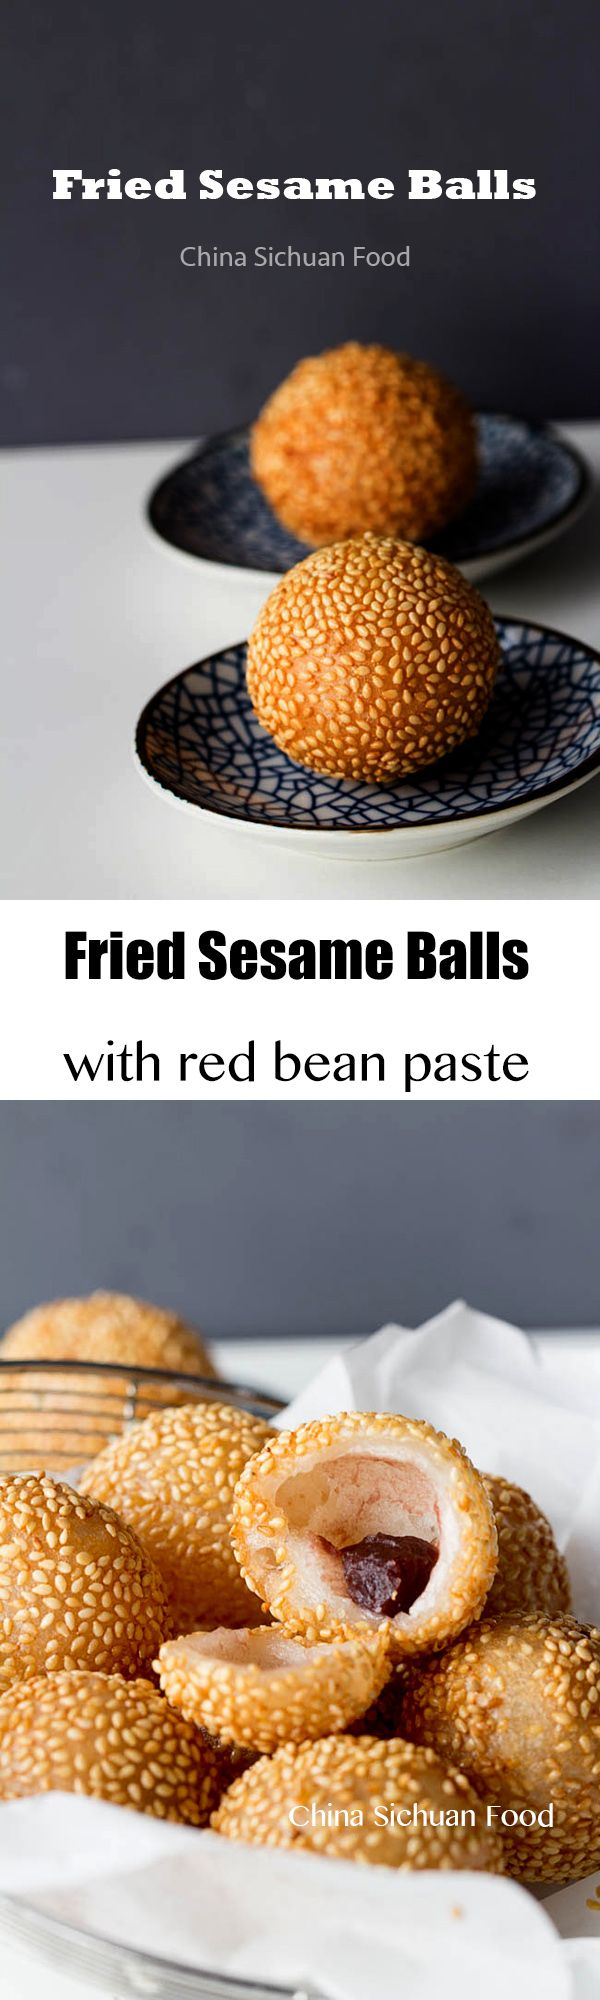 Fried sesame balls--a #dimsum with red bean paste